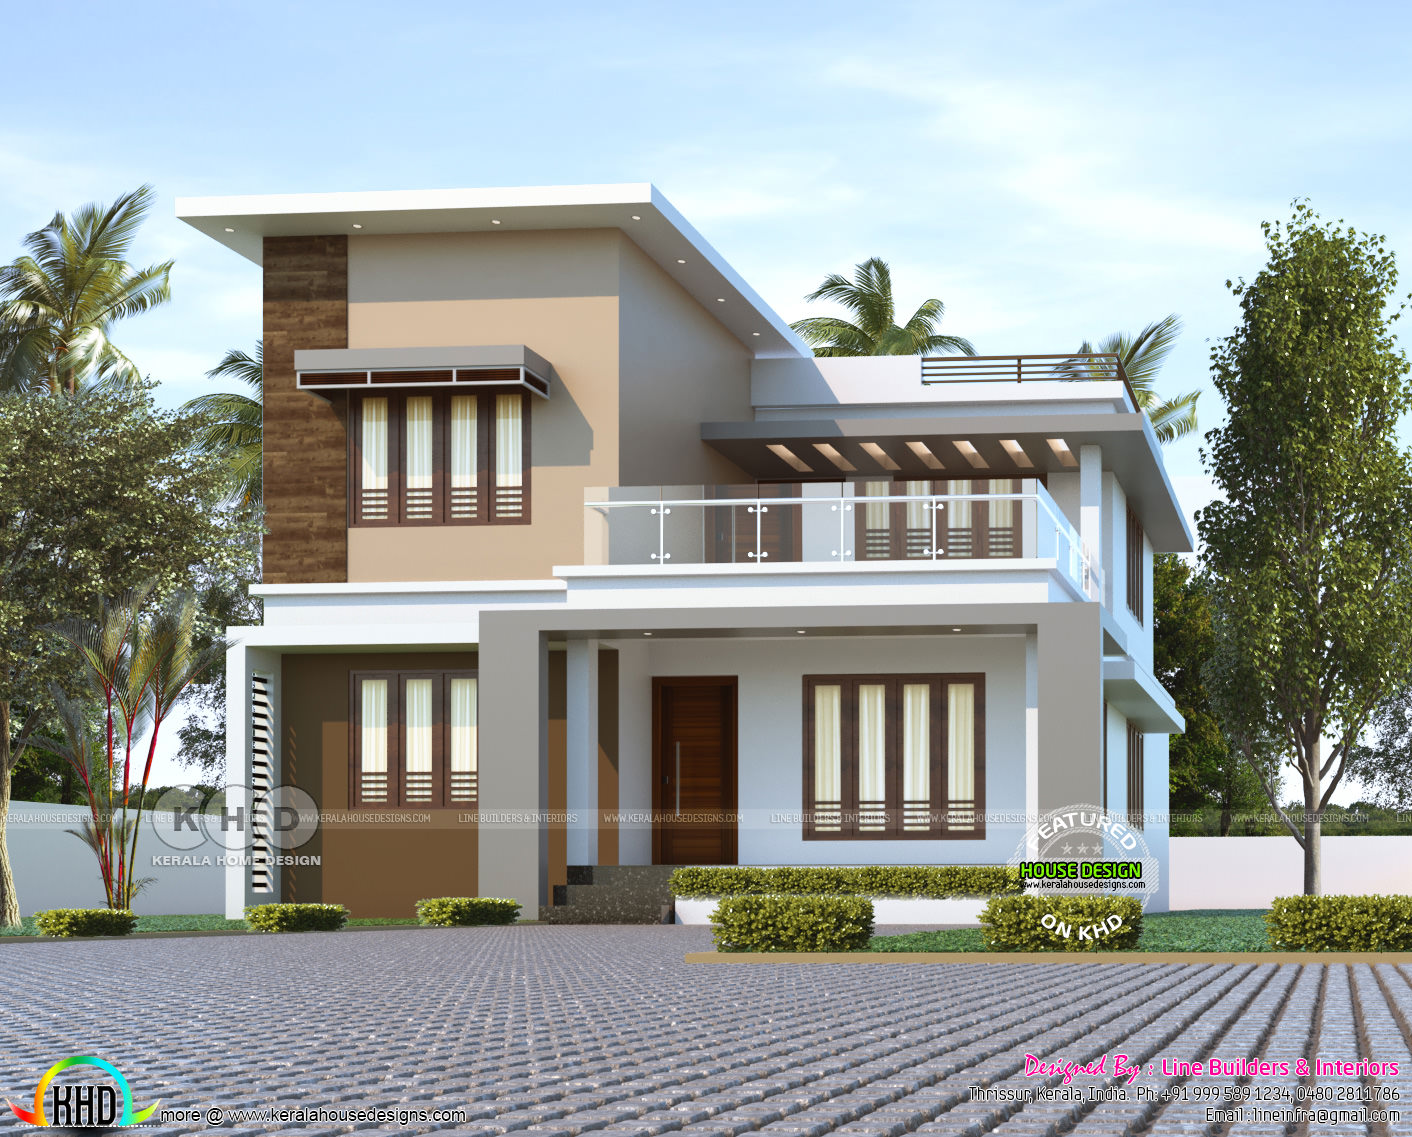 1780 Sq Ft 3 Bedroom Flat Roof House Plan Kerala Home Design And Floor Plans 8000 Houses